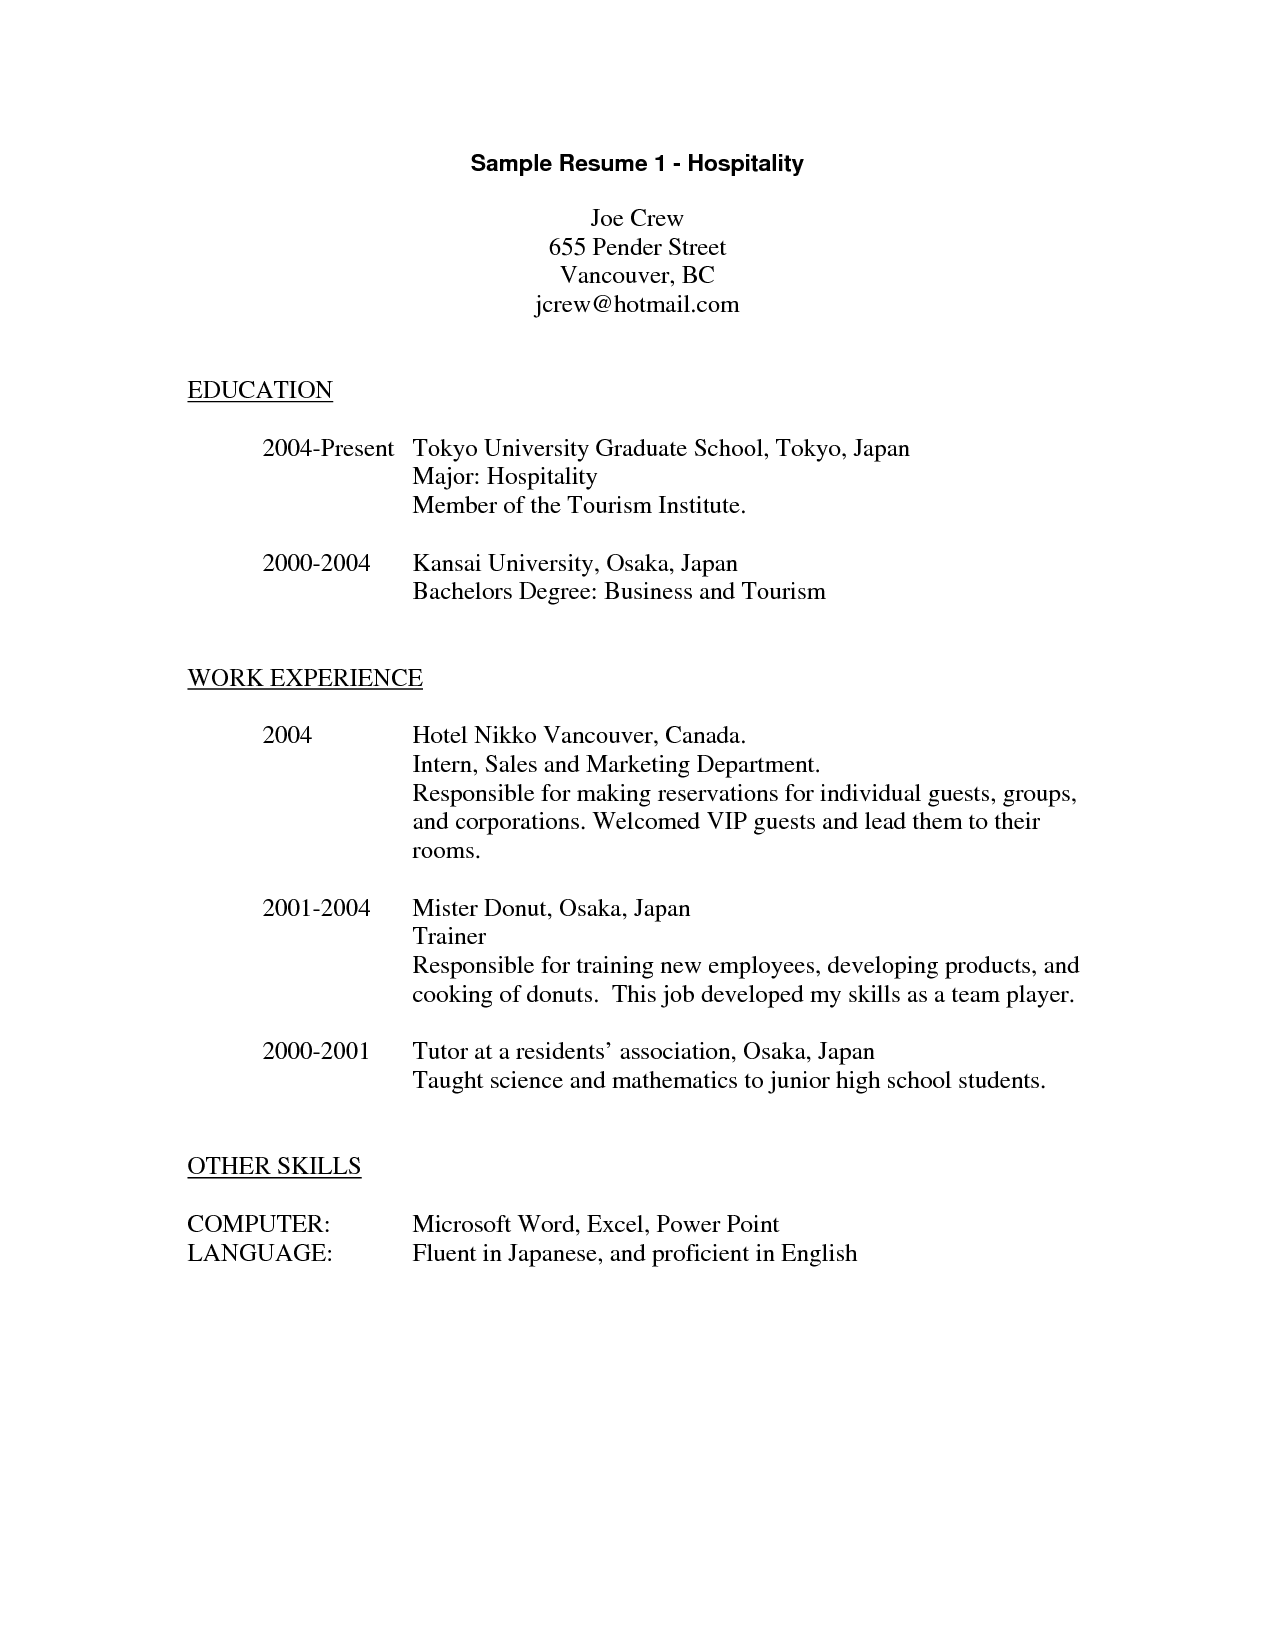 Hospitality Resume Objectives Sample Resume For Hospitality Industry Sample Resume For